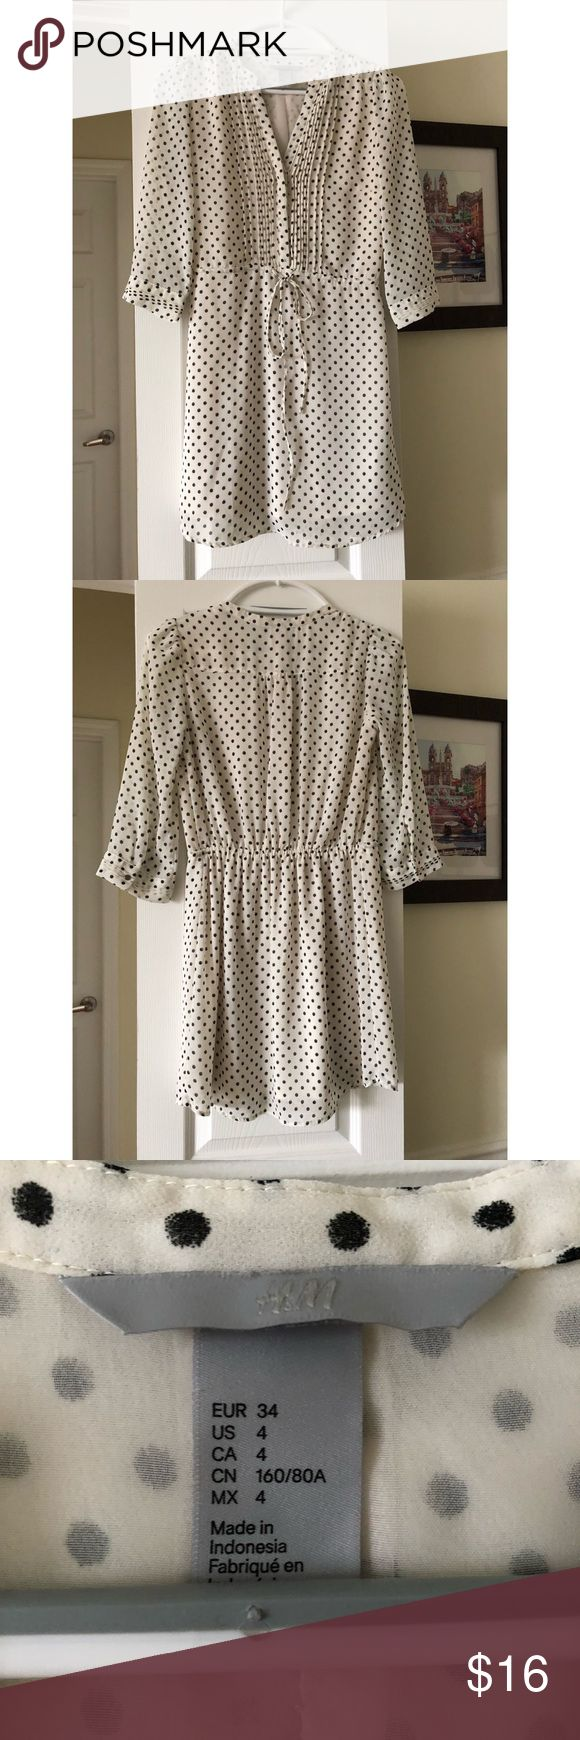 ✨H&M white polka dot dress ✨ Beautiful light and airy white polka dot dress from H&M. Runs small and fits more like a 2 than a 4 so listed as a size 2. Adorable dress that can be dressed up for work or enjoyed as a casual weekend dress with sandals and sunglasses! In like new condition, only worn twice. 👗✨🛍 H&M Dresses Mini